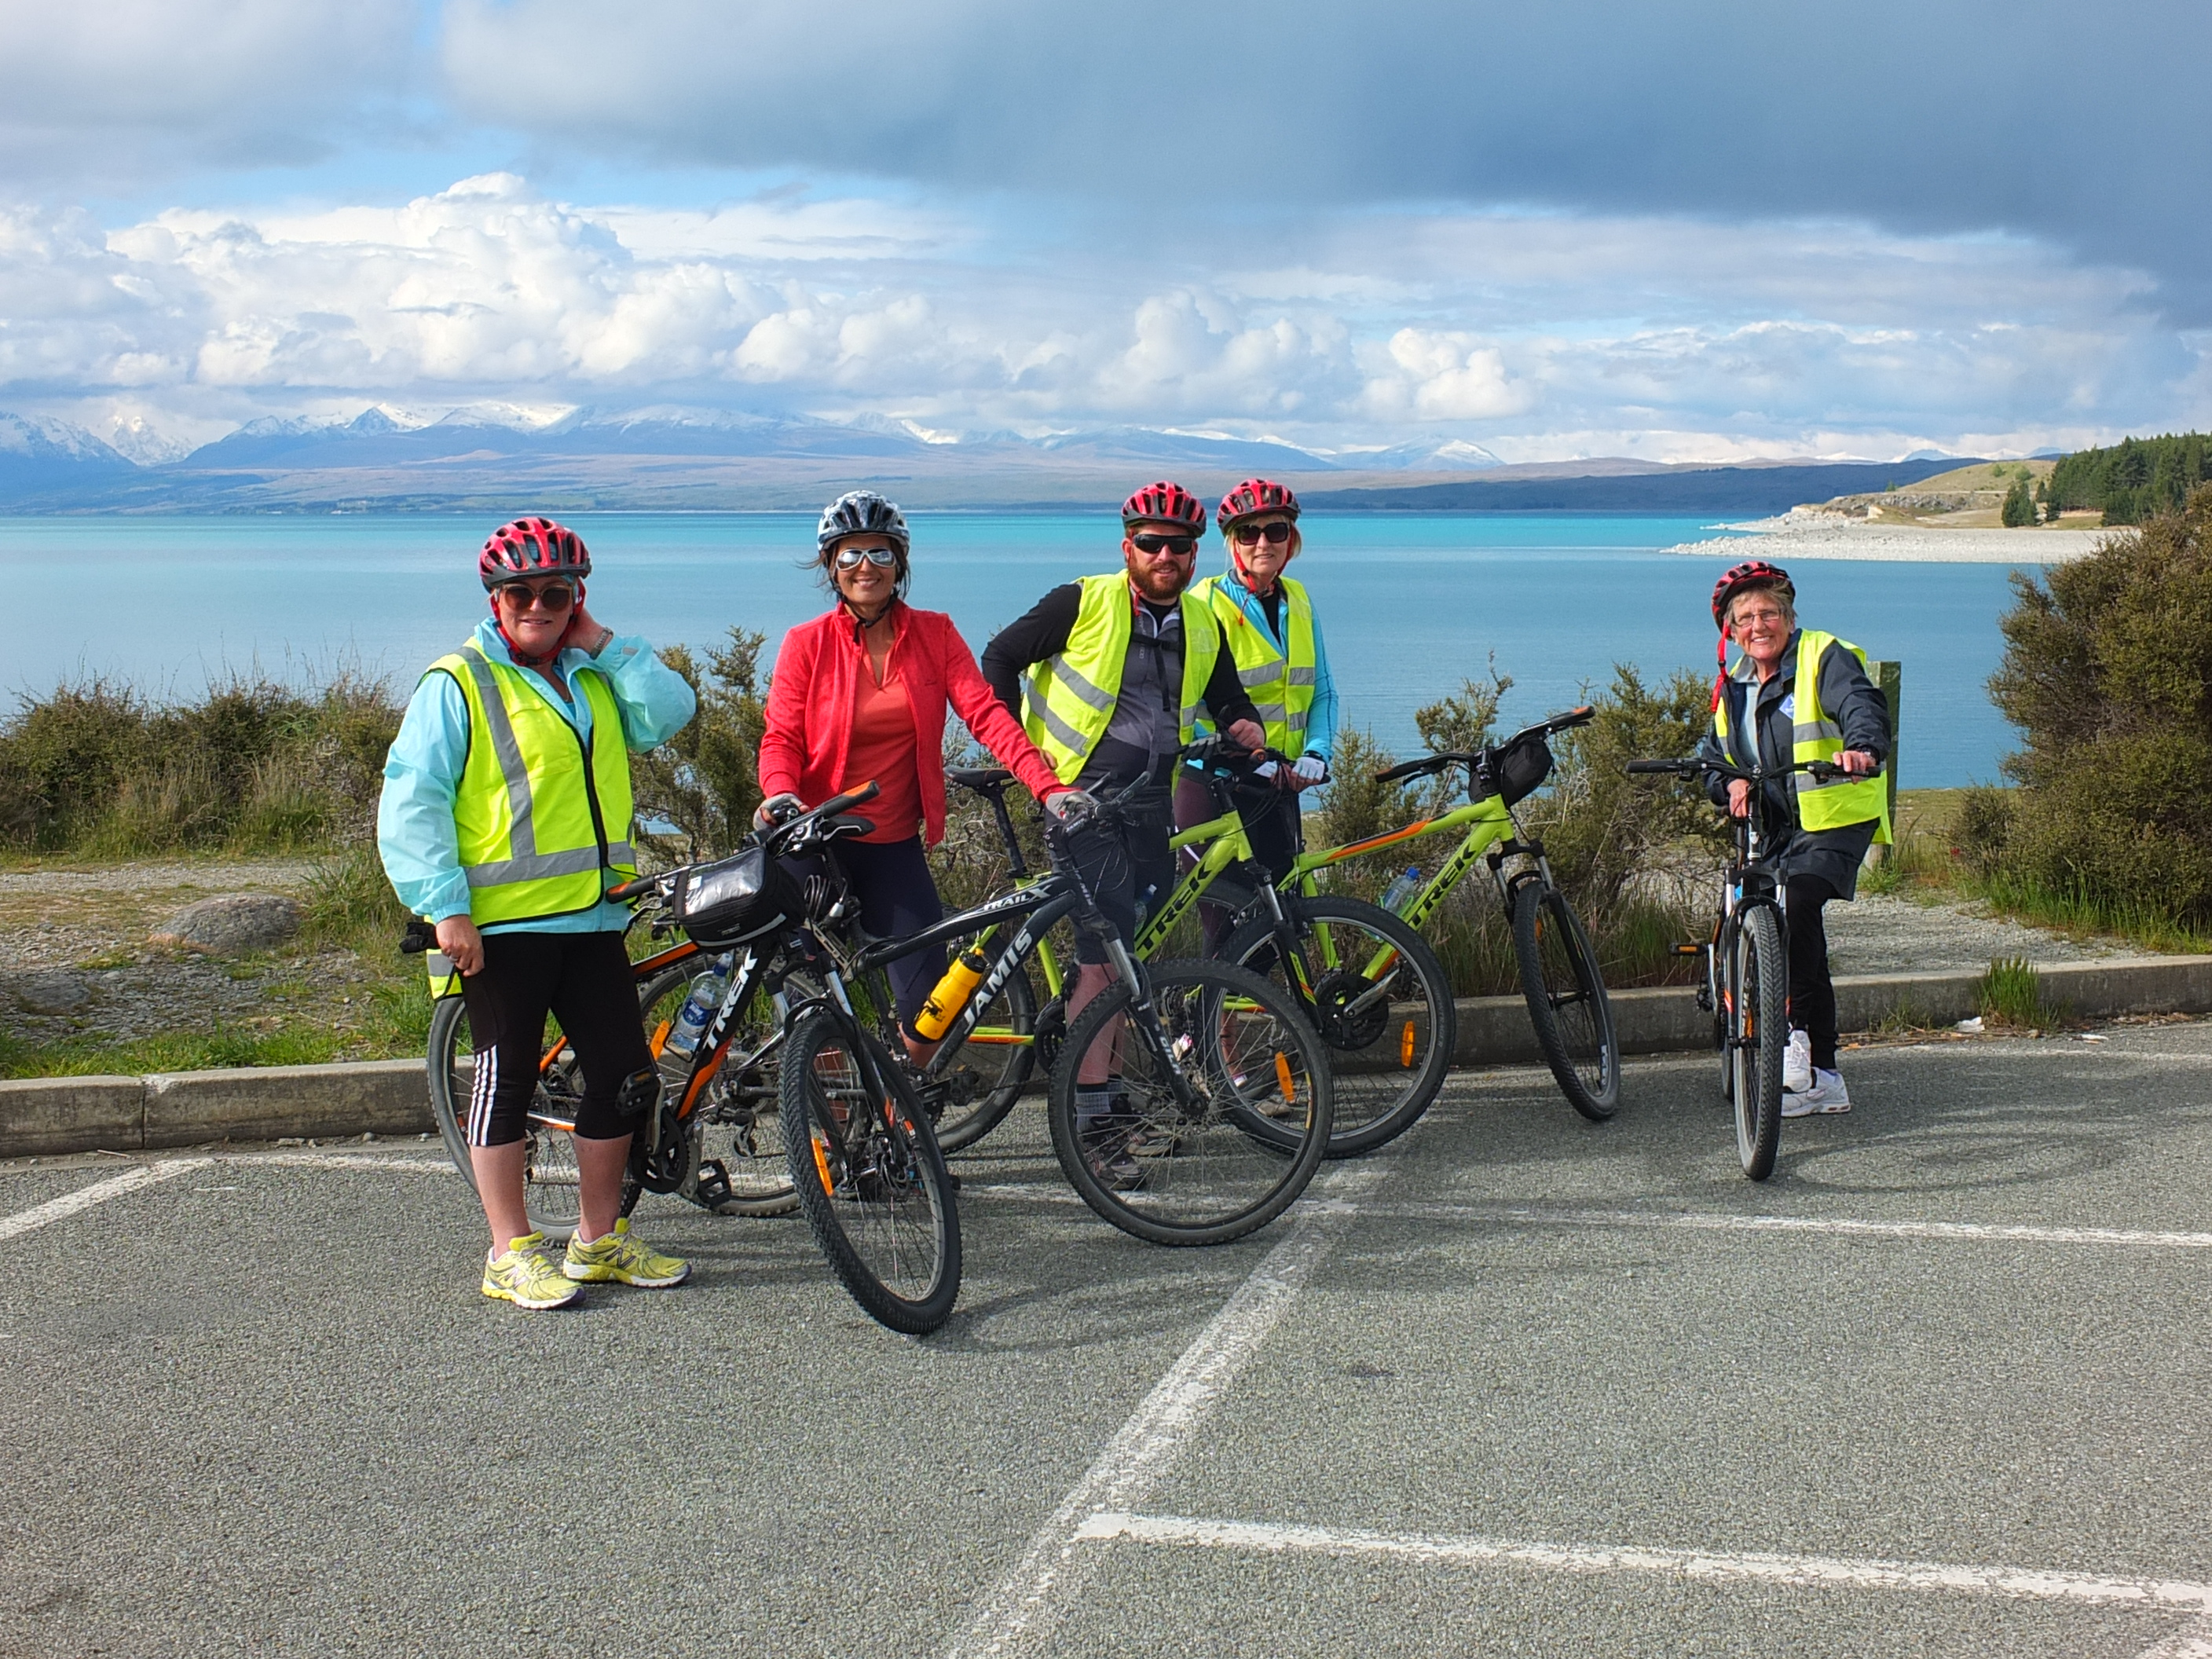 Taking a break at Lake Pukaki  on Alps2 Ocean cycle tour